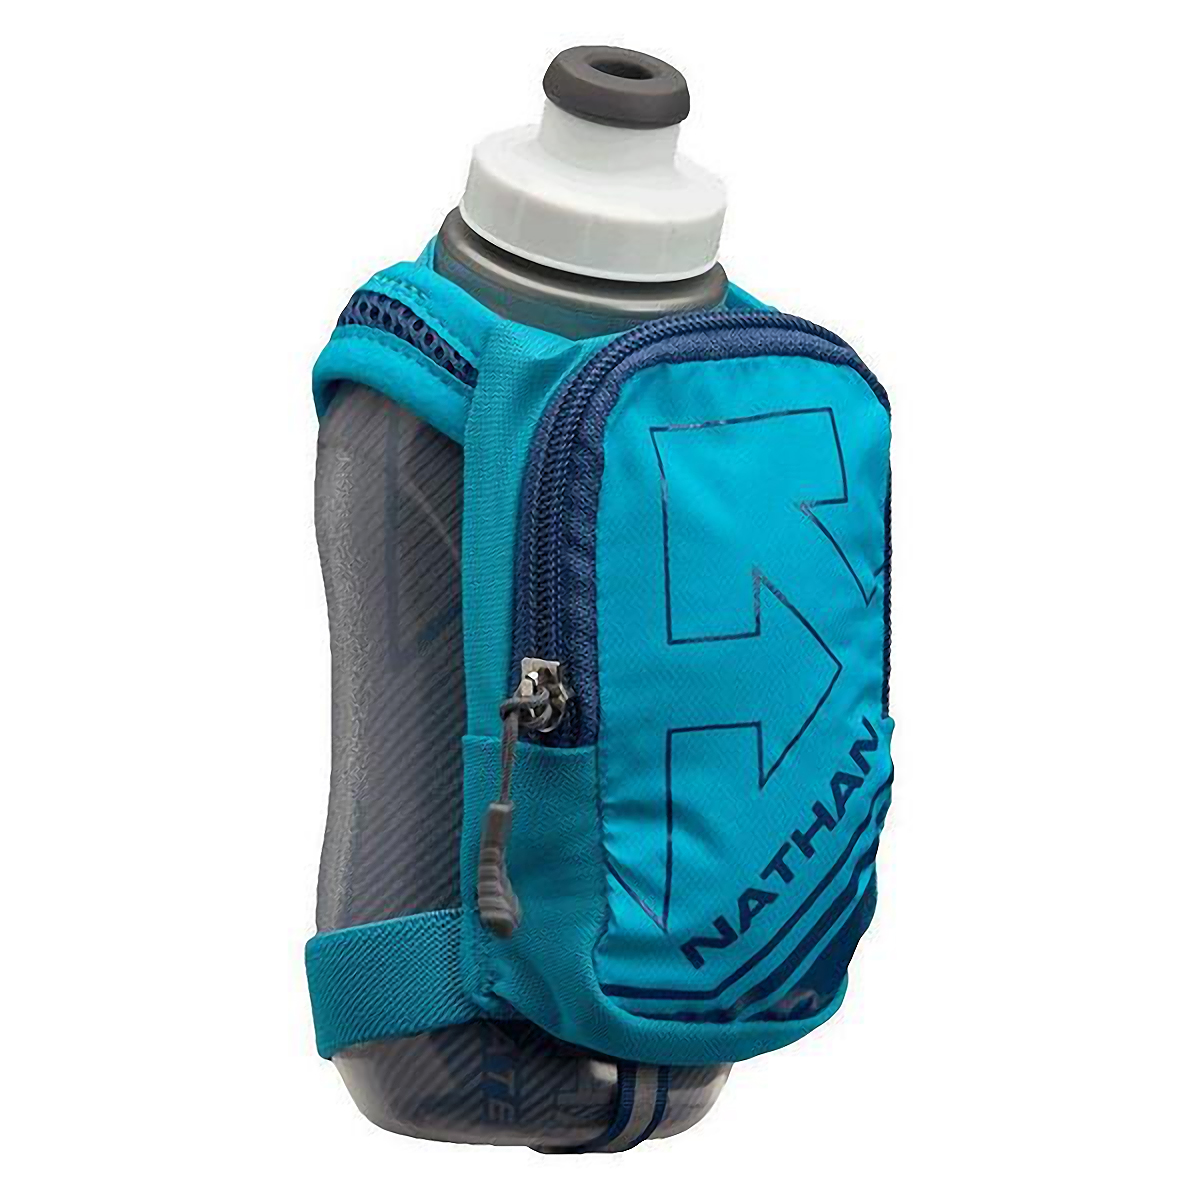 Nathan Speedshot Plus Insulated Flask  - Color: Bluebird/True Navy - Size: One Size, Bluebird/True Navy, large, image 1